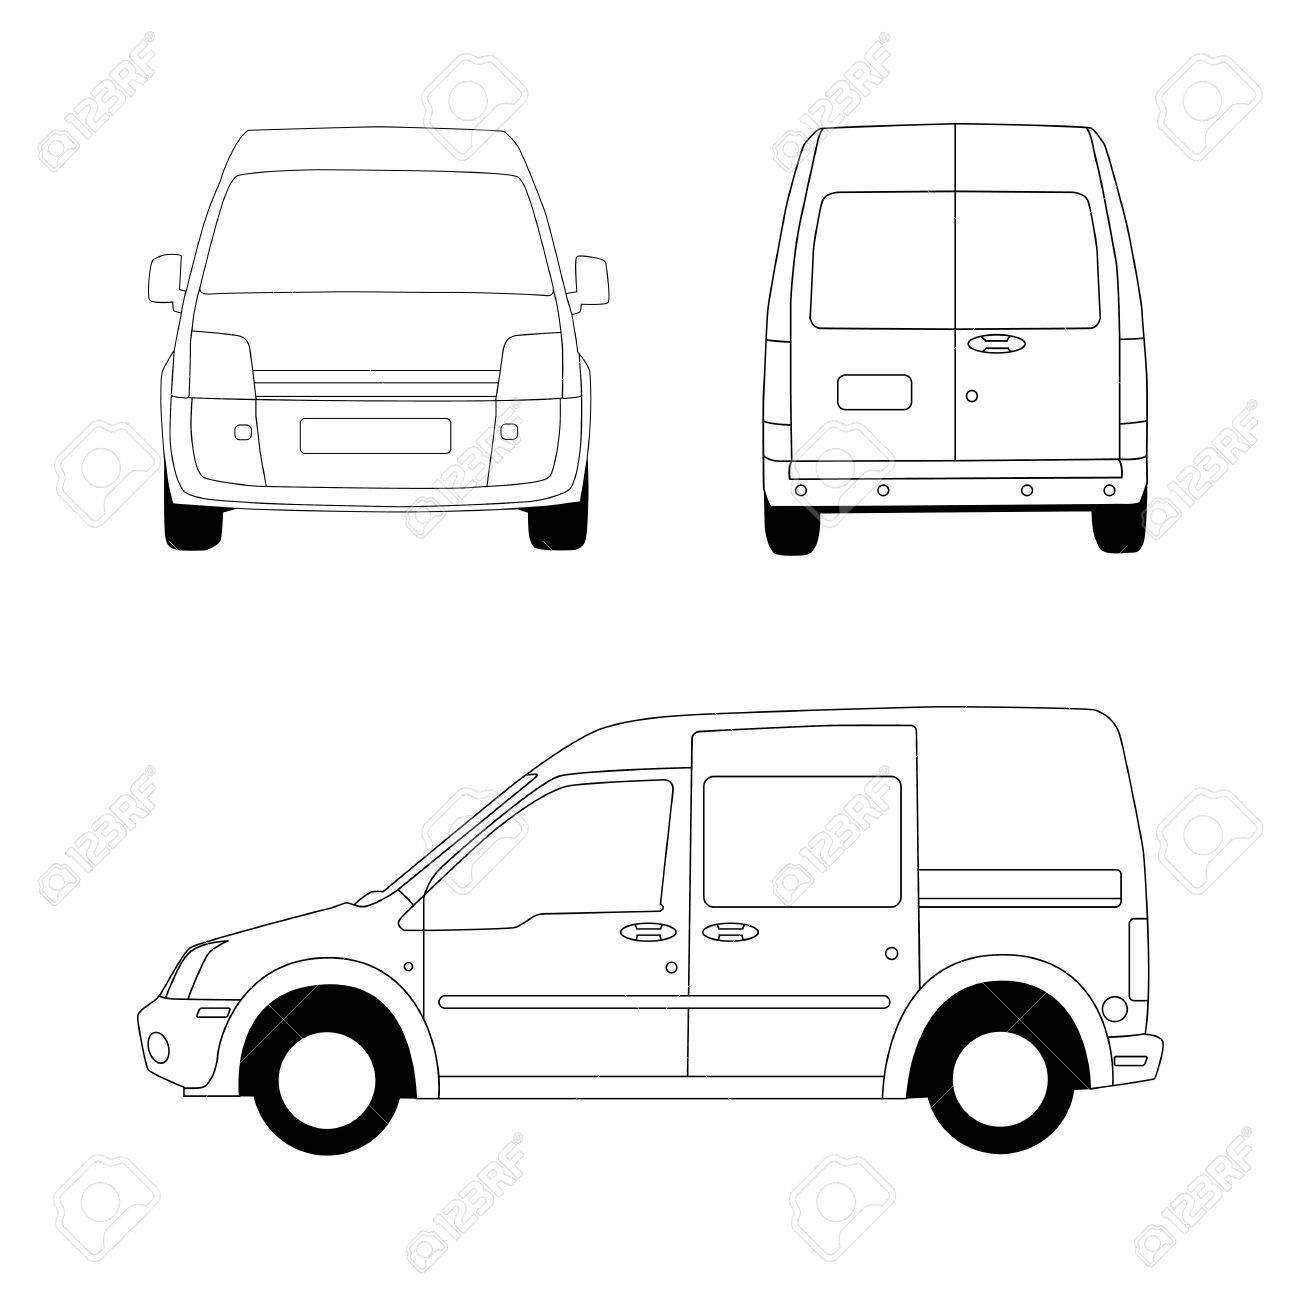 Delivery van line illustration Stock Vector - 12897639